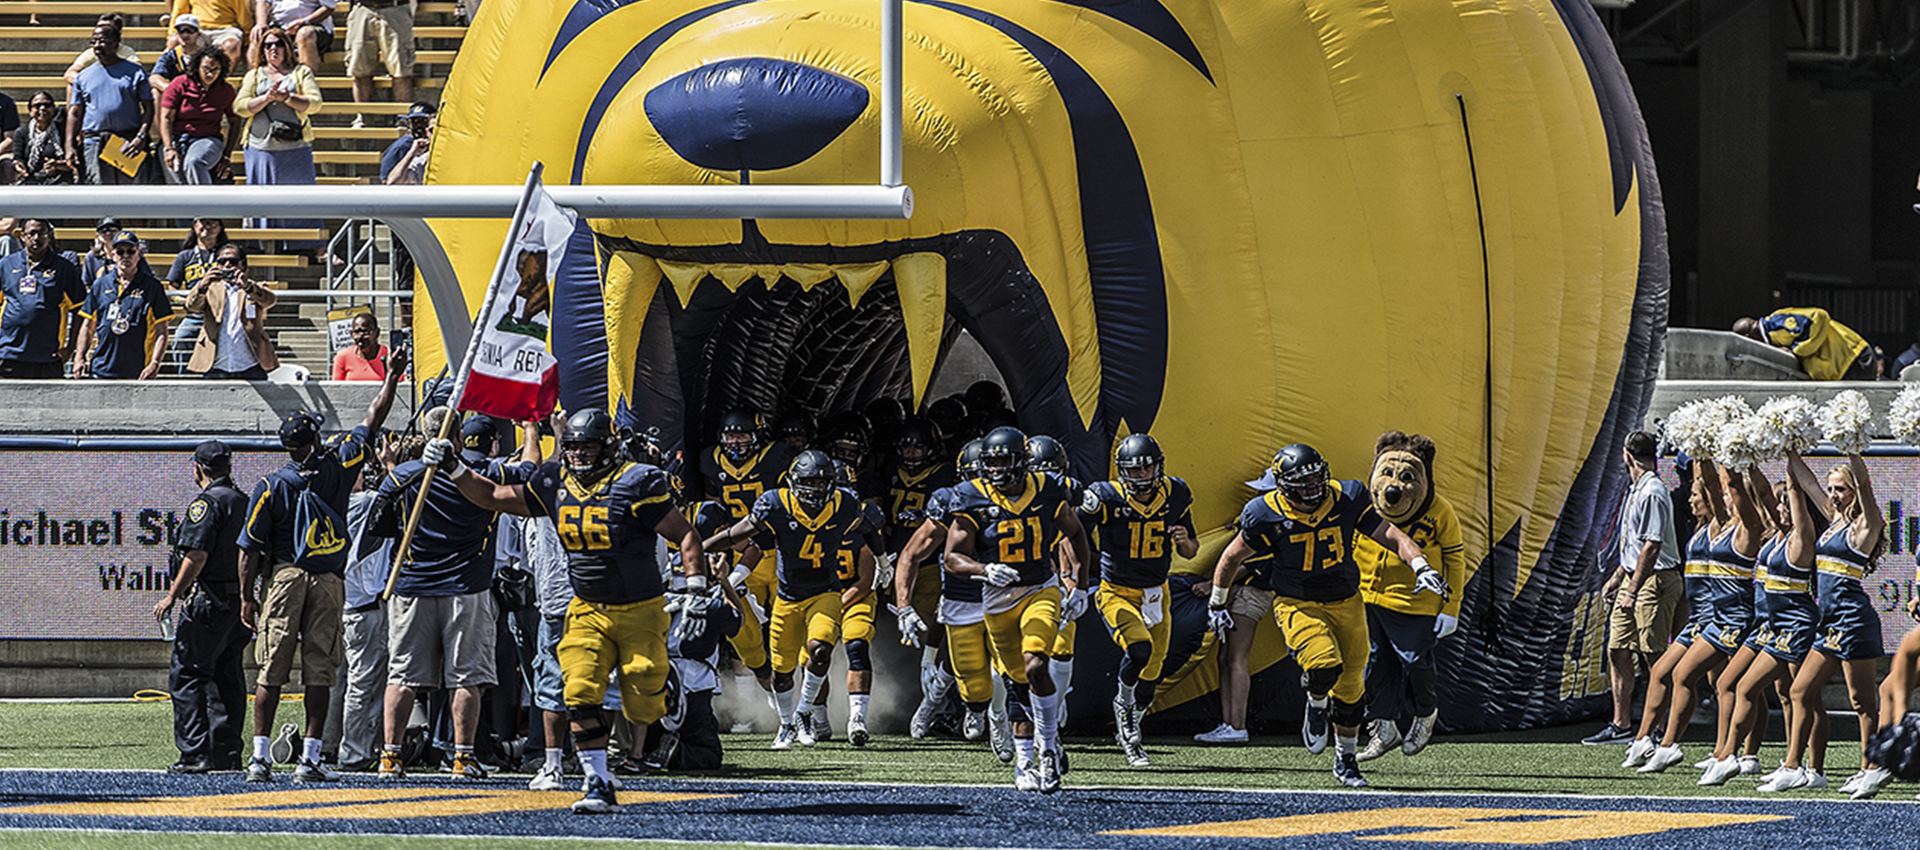 UNIVERSITY OF CALIFORNIA, BERKELEY SIGNS EXCLUSIVE LICENSING AGREEMENT WITH LEARFIELD LICENSING PARTNERS